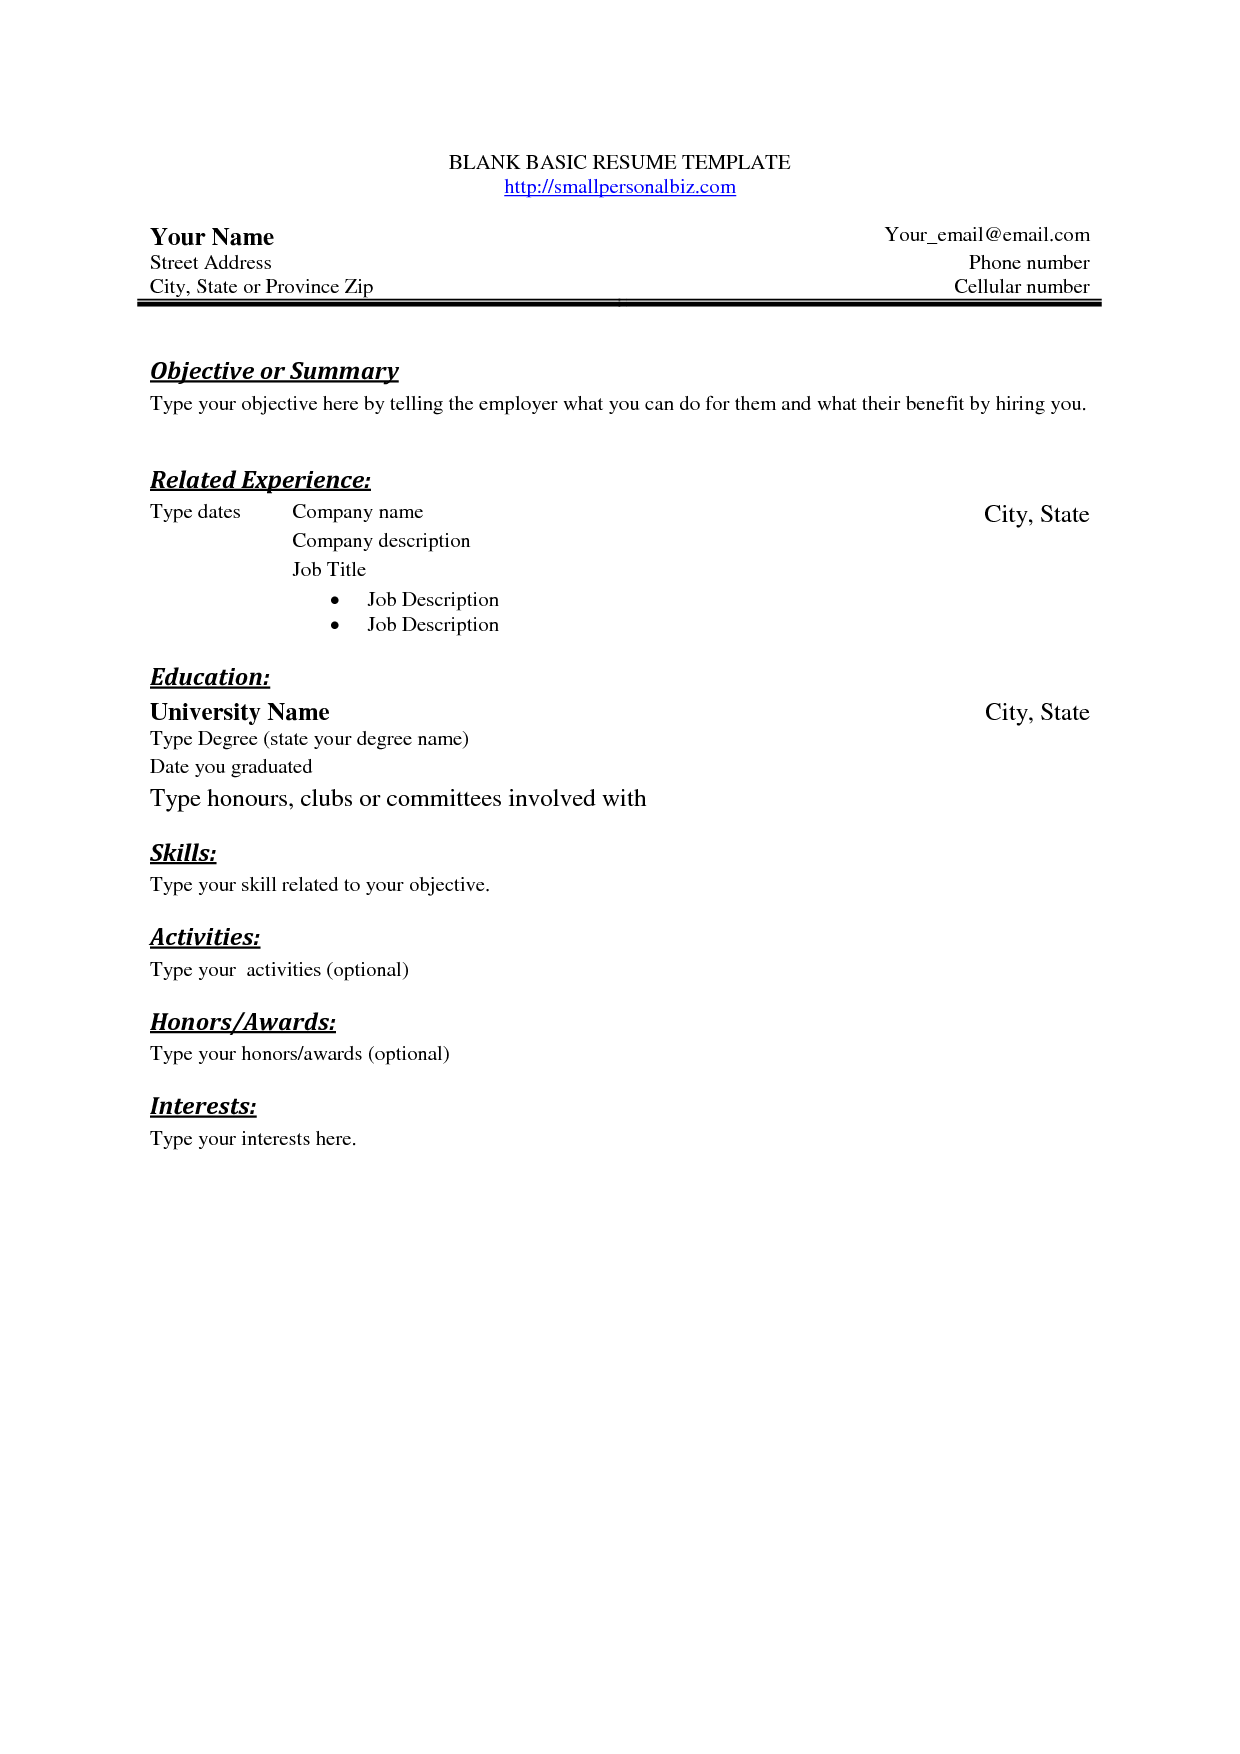 free basic blank resume template free basic sample resume - Simple Resume Builder Free